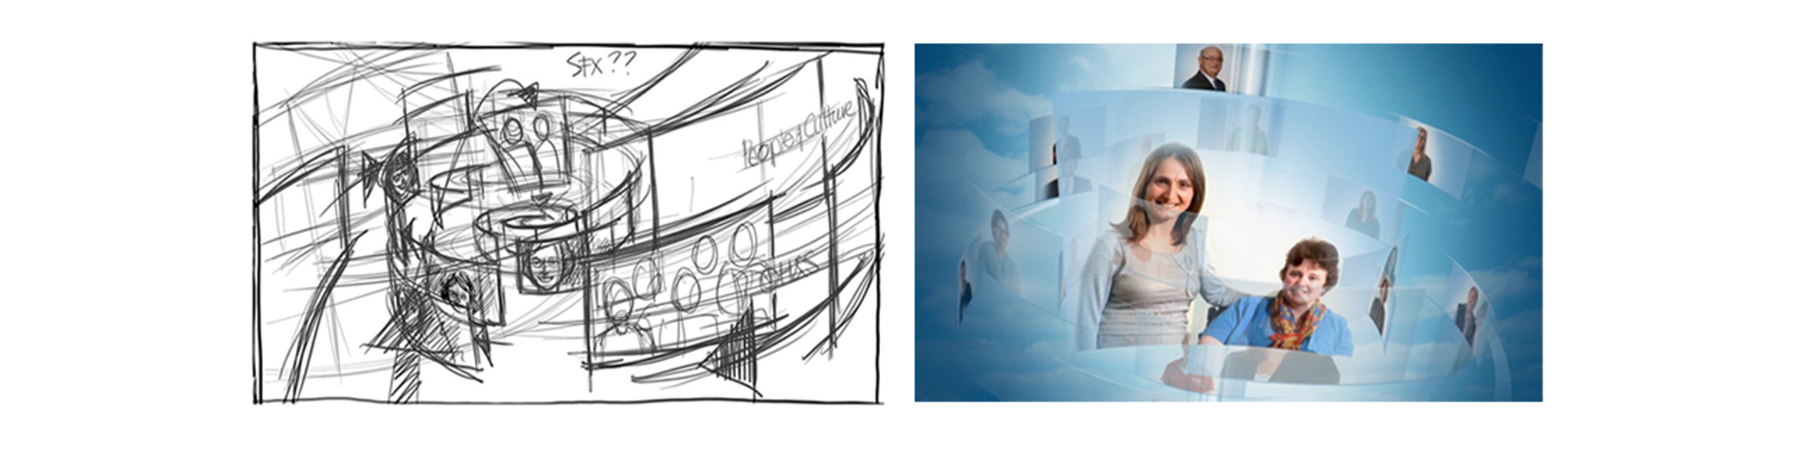 The before and after scribble for a CGI execution within the AHC Induction video.